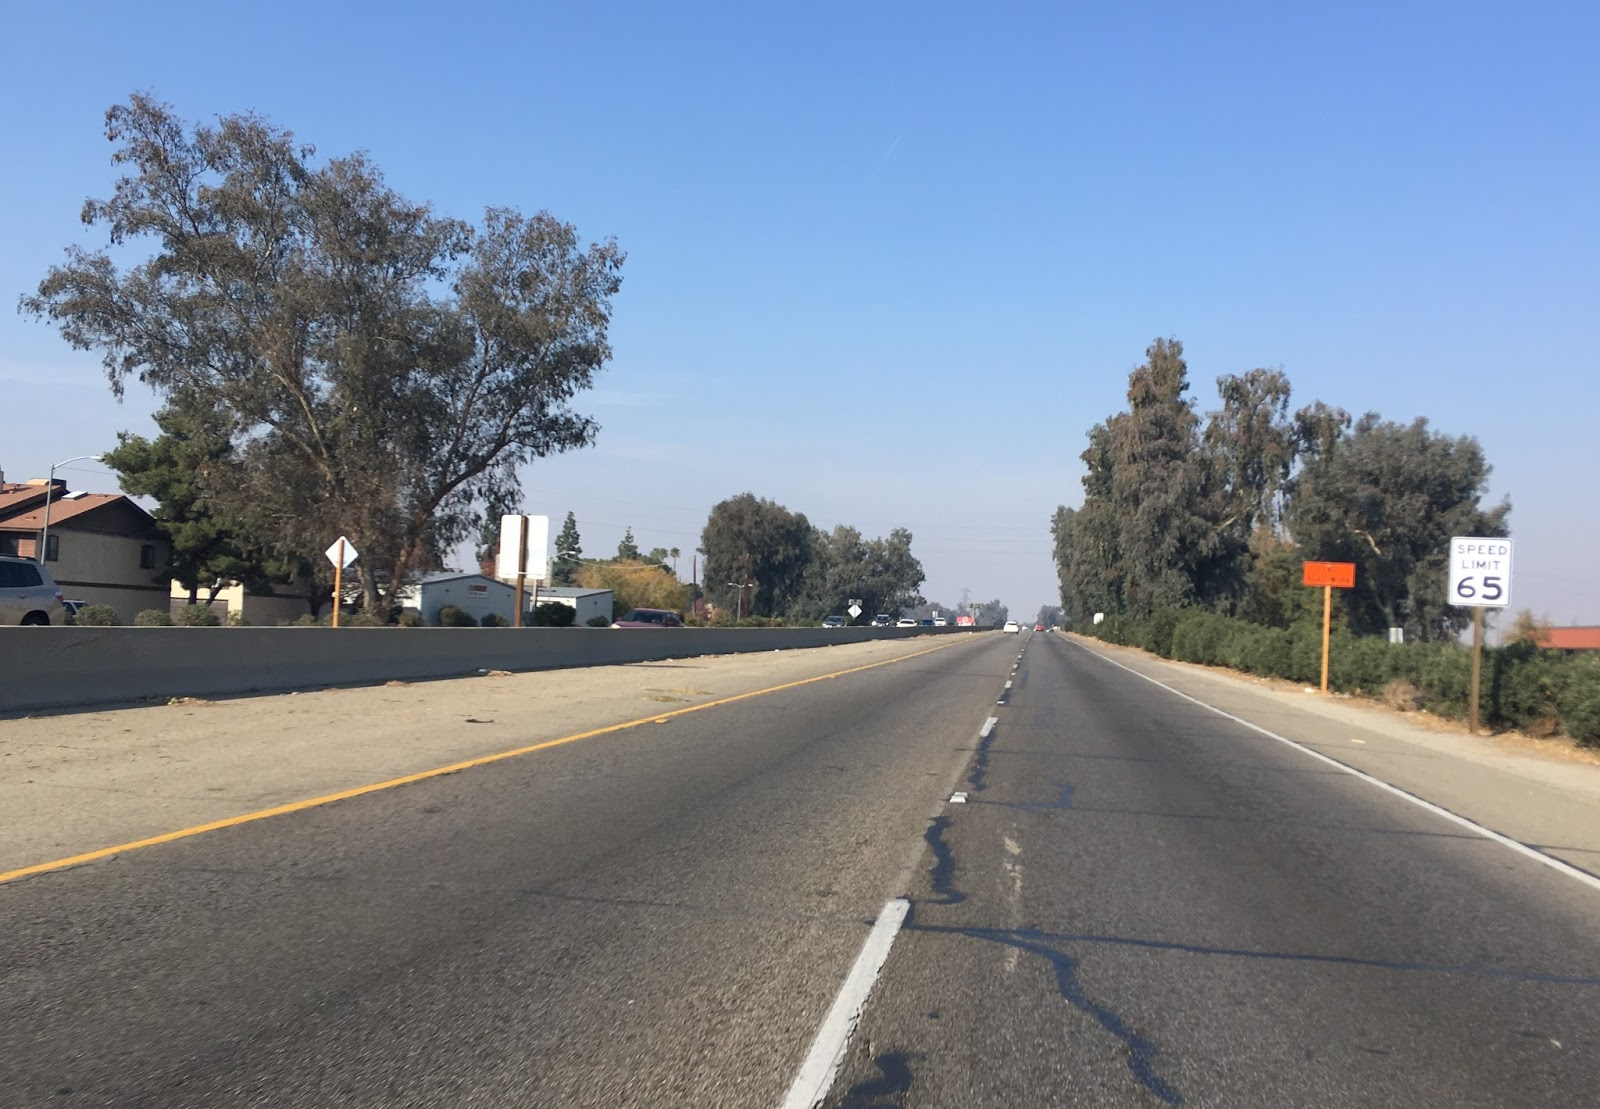 as state previously ca 204 was once part of us 99 but was not fully the original alignment through the city of bakersfield us 99 originally appears to have